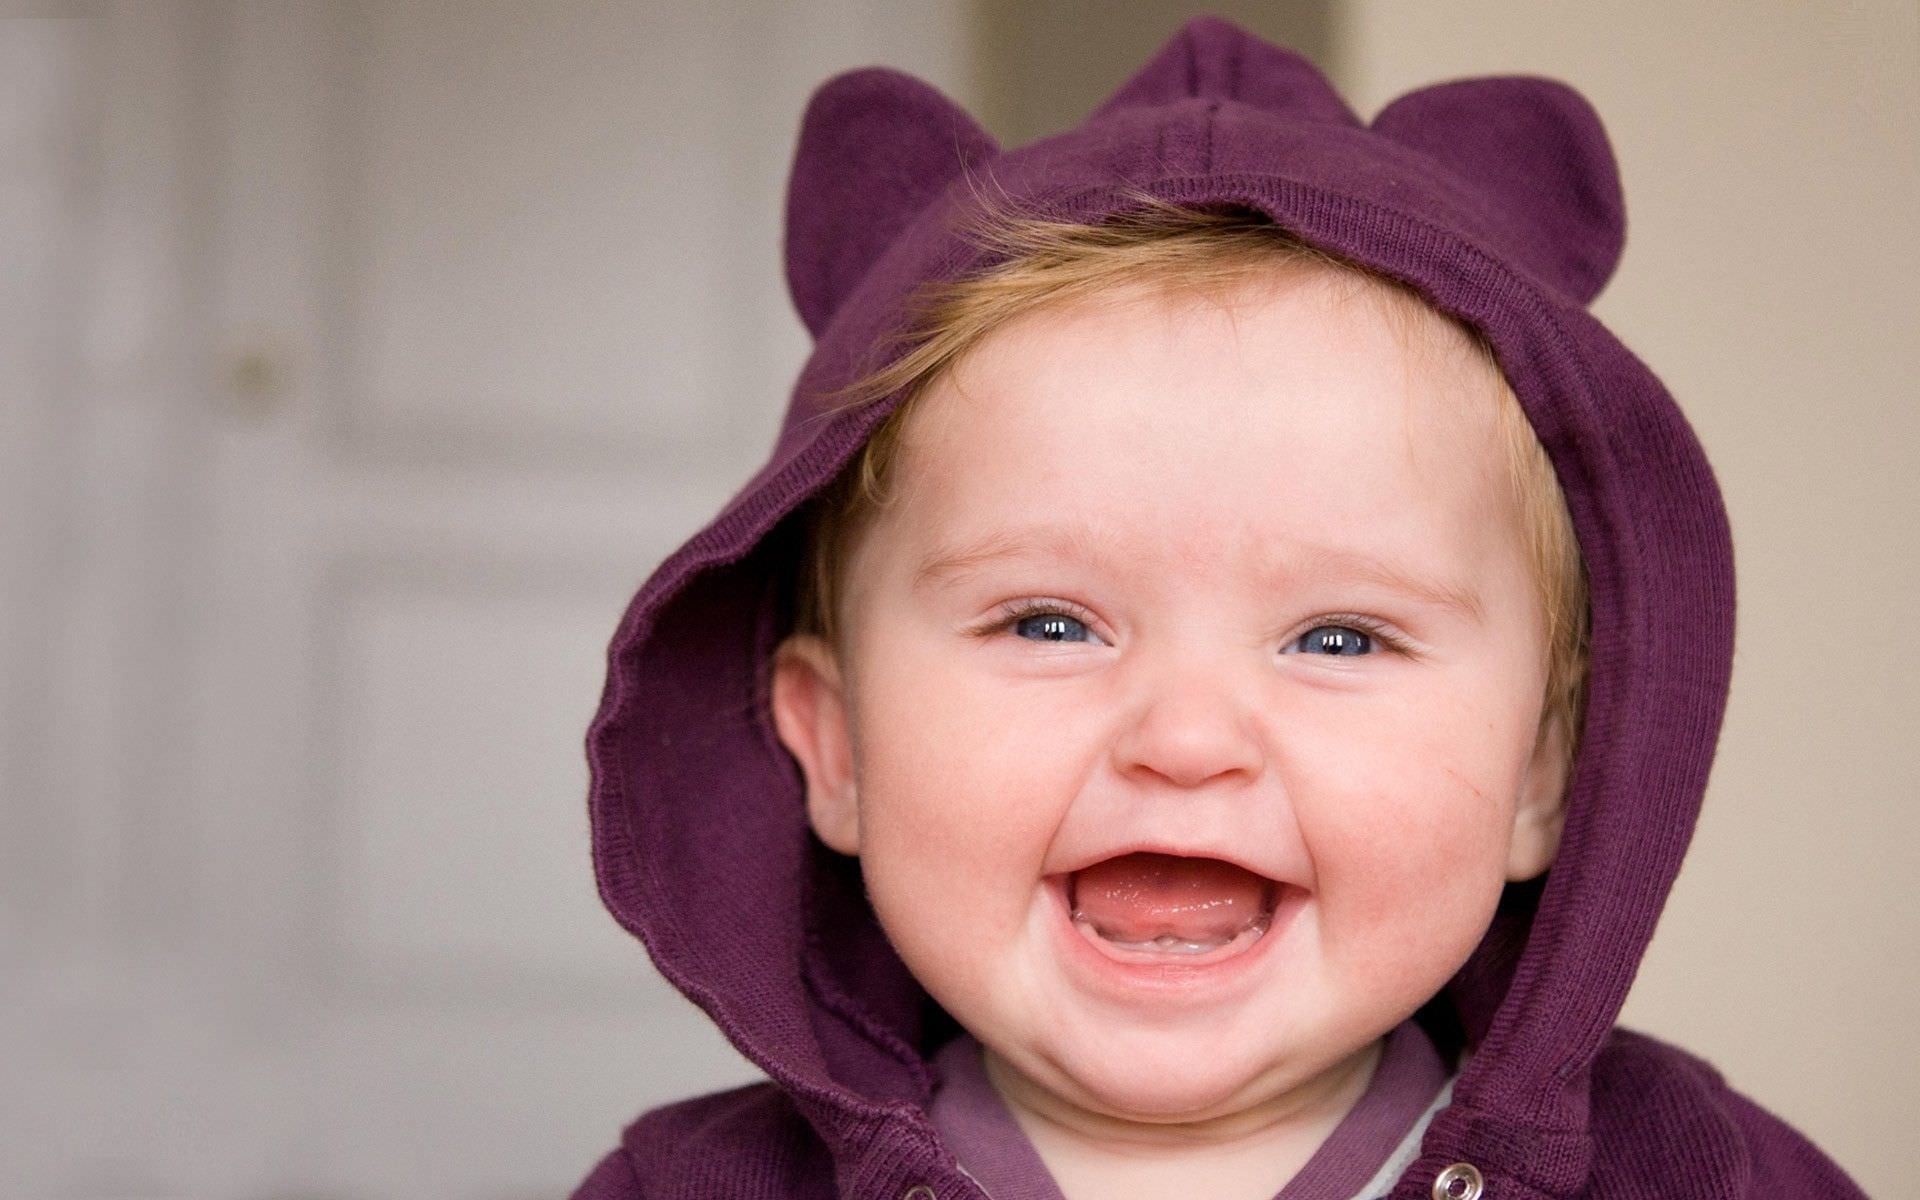 Cute Baby Boy Smiling Wallpaper